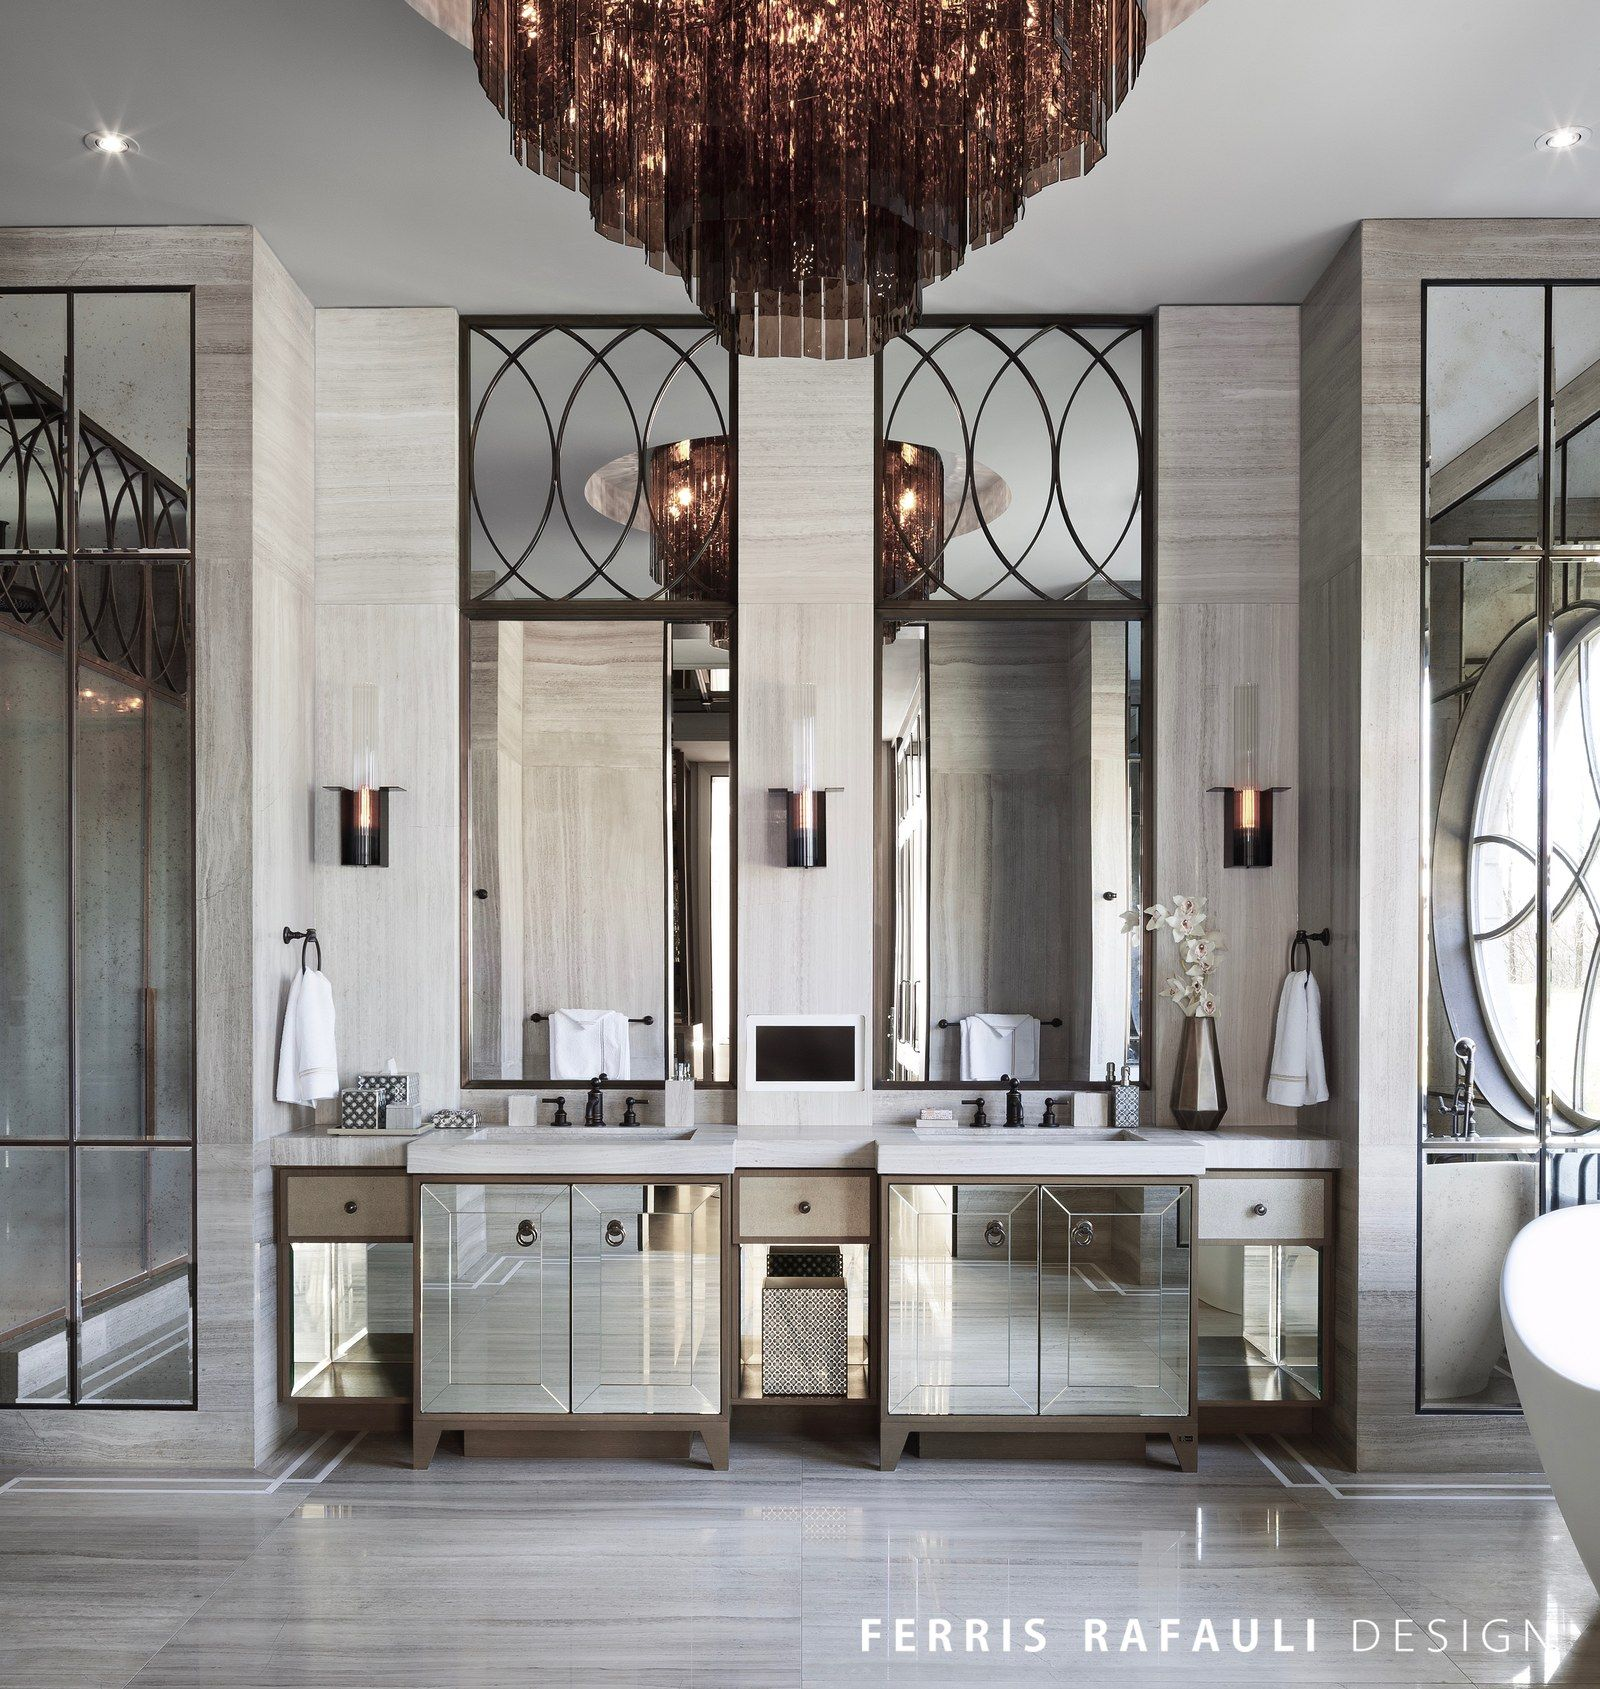 architecture by ferris rafauli get started on liberating your rh pinterest com how to become in interior designer how to get job in interior design